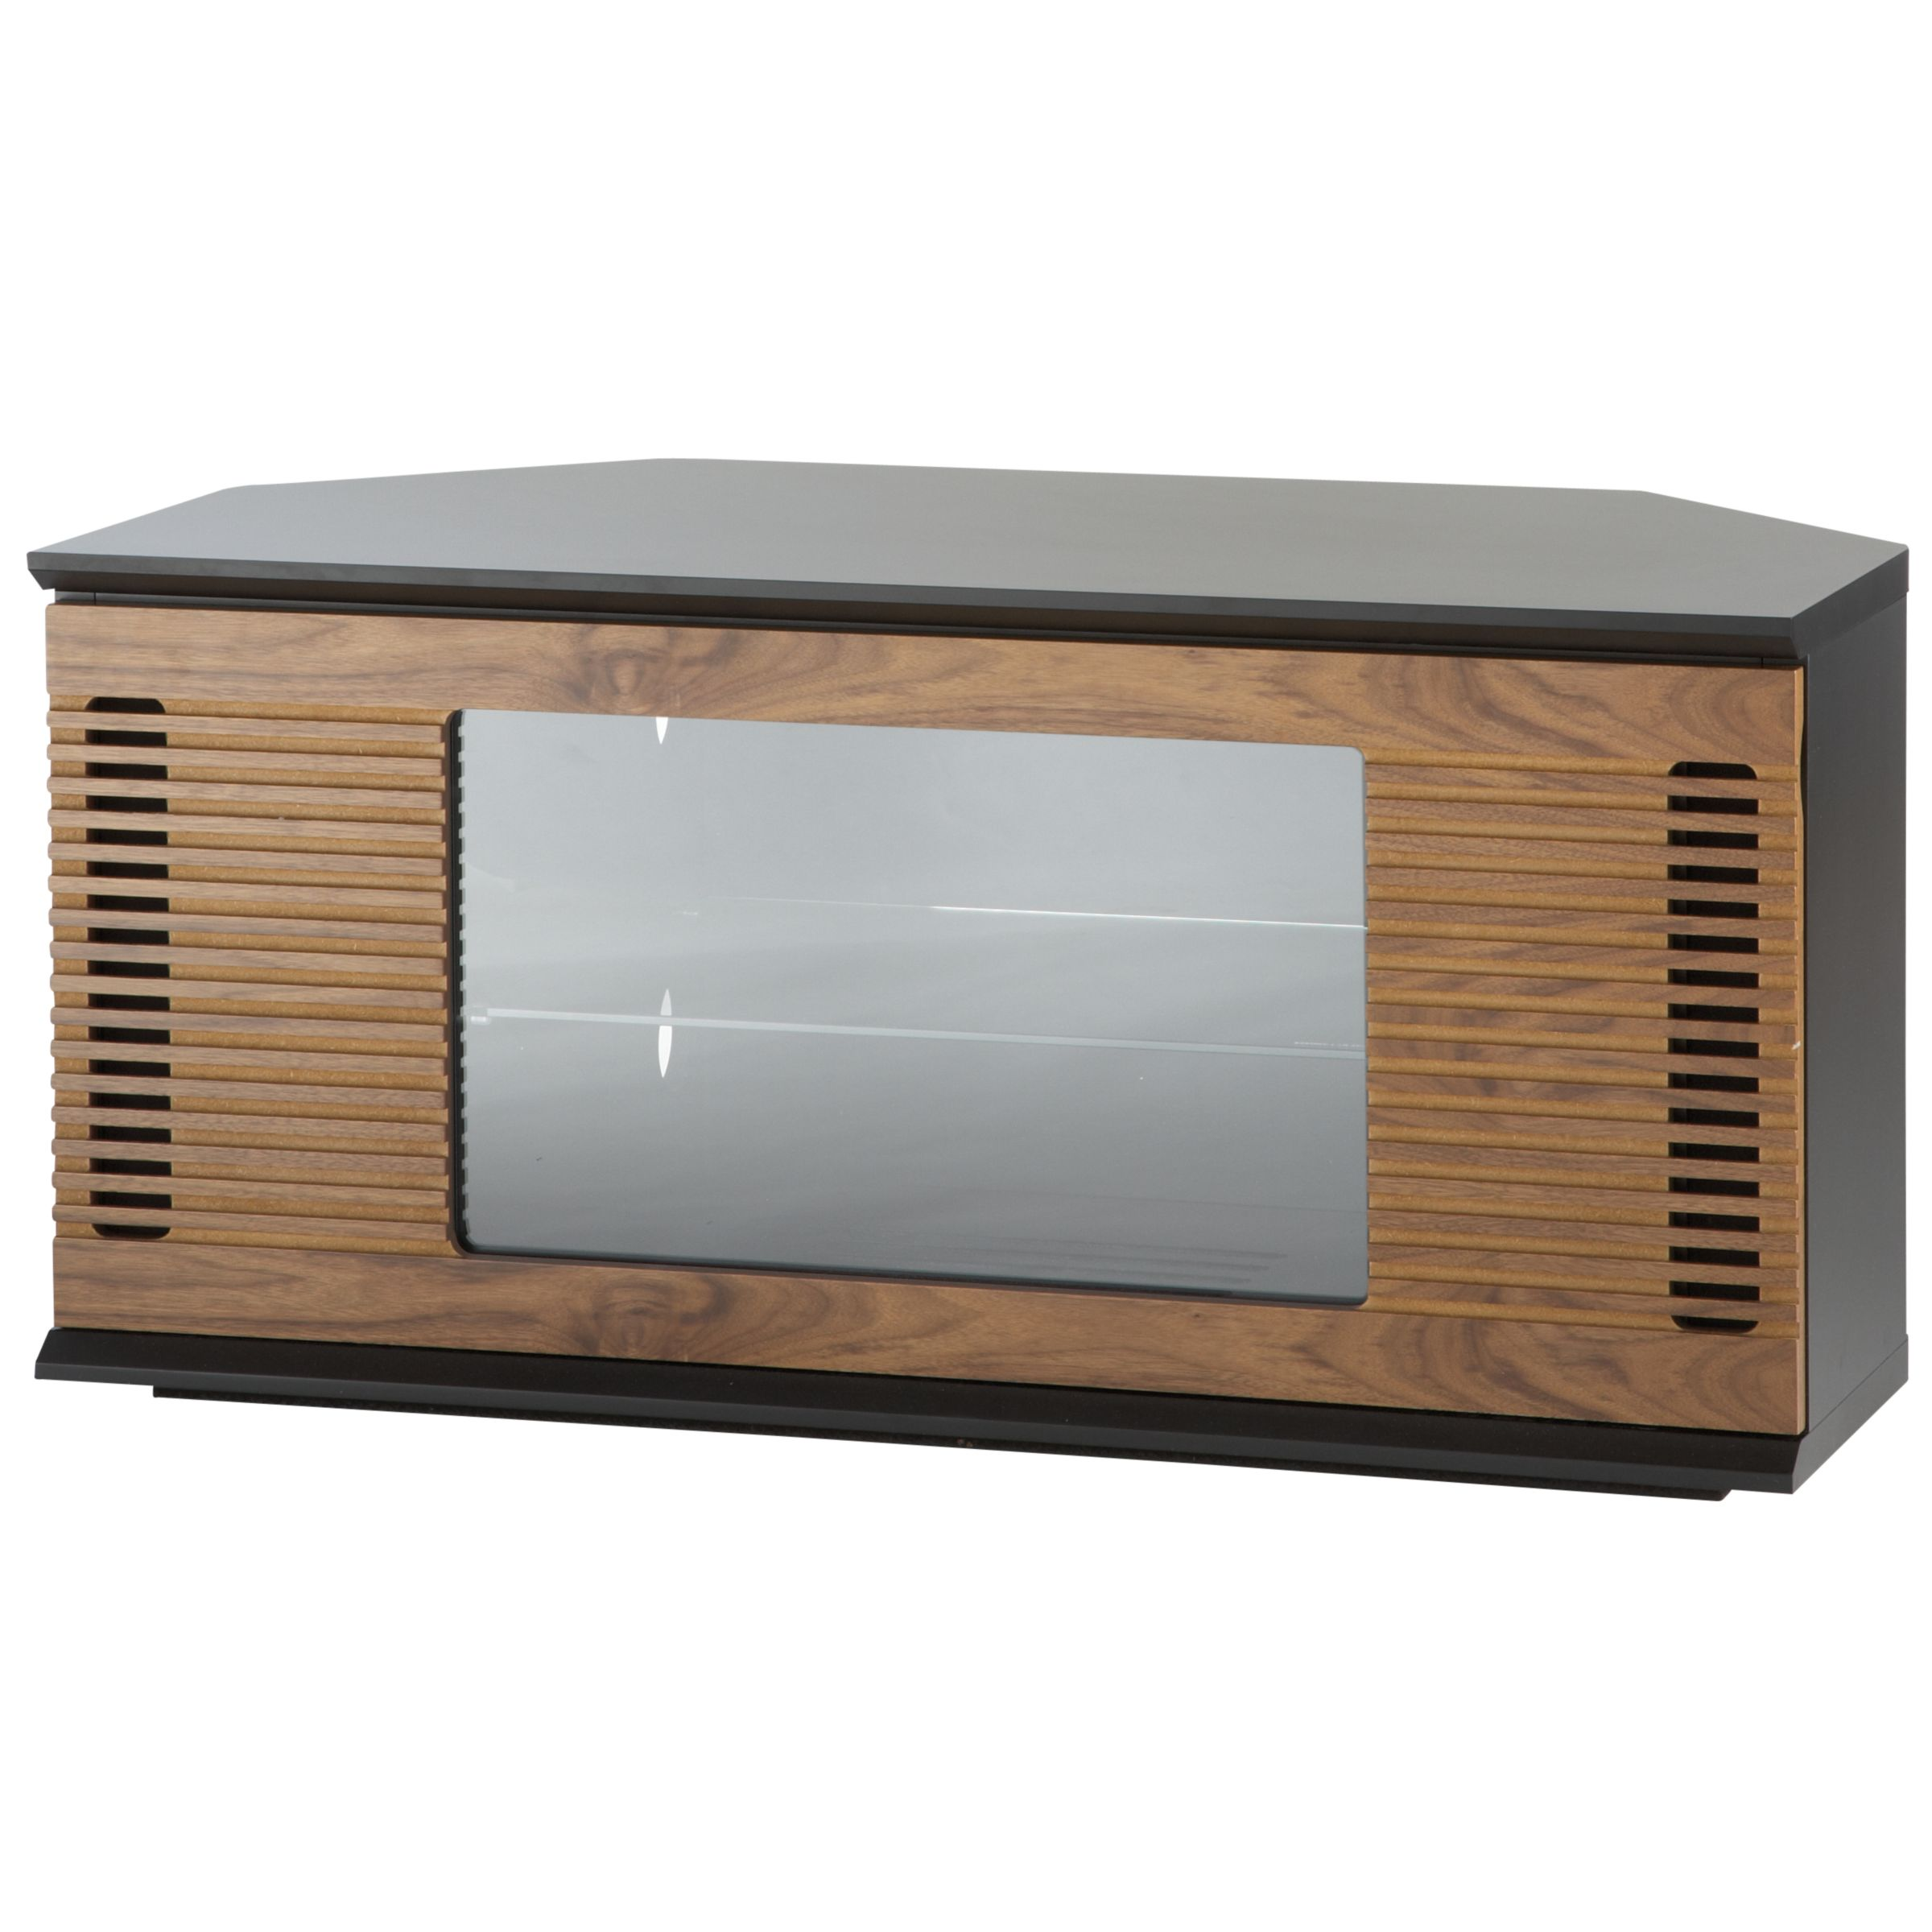 ARN1000-W Television Stand/Home Cinema